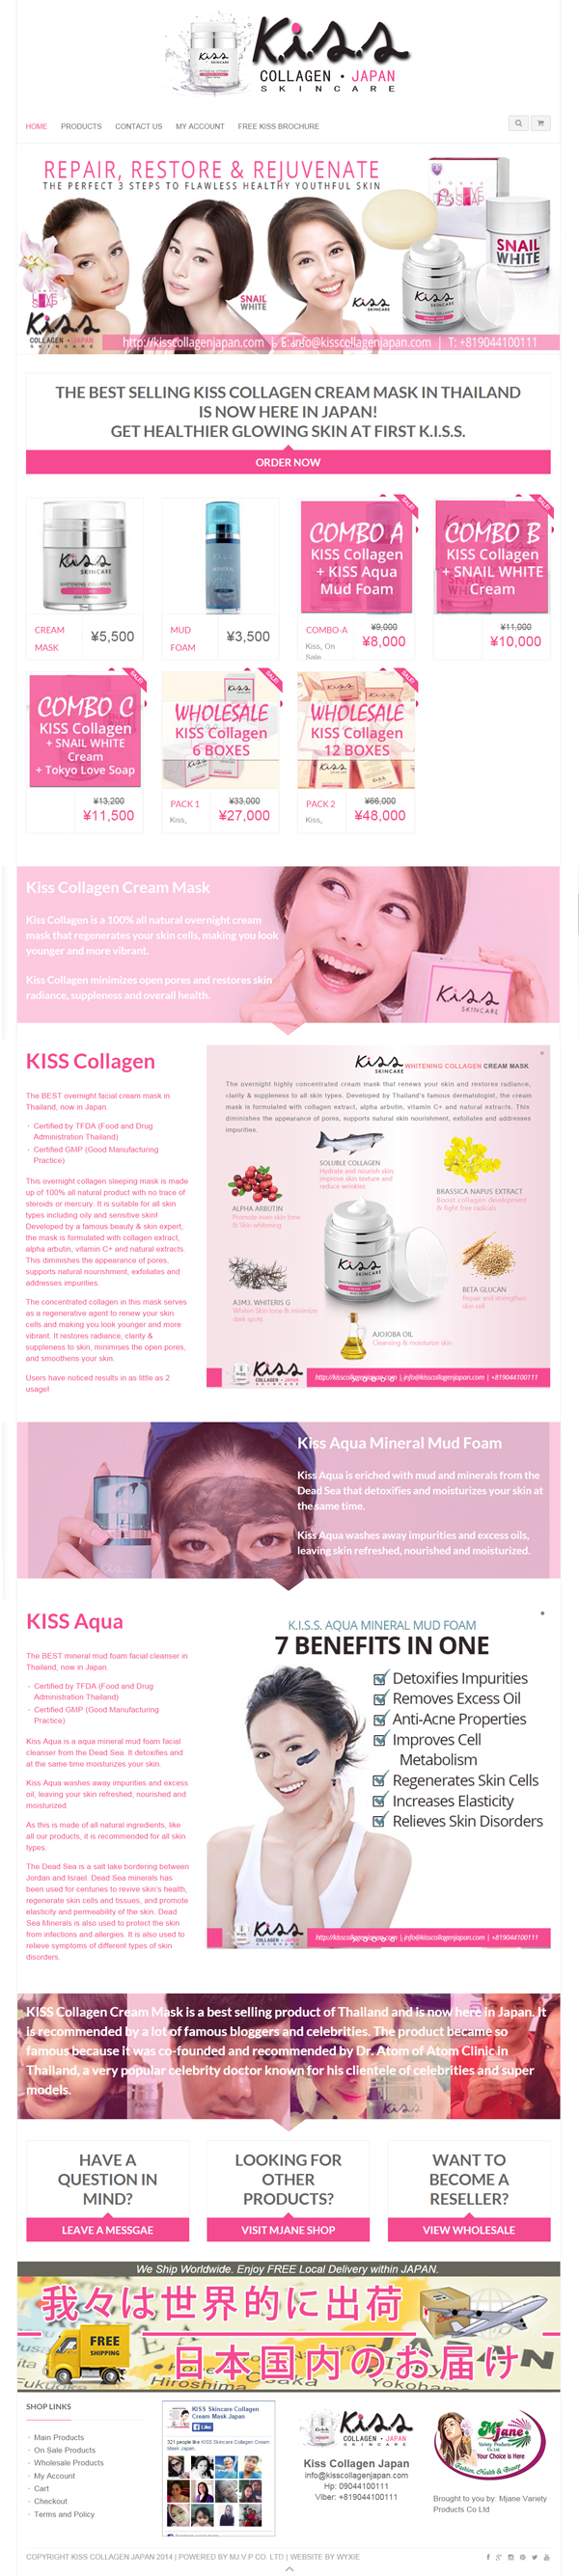 Online Portfolio - Kiss Collagen Japan Homepage